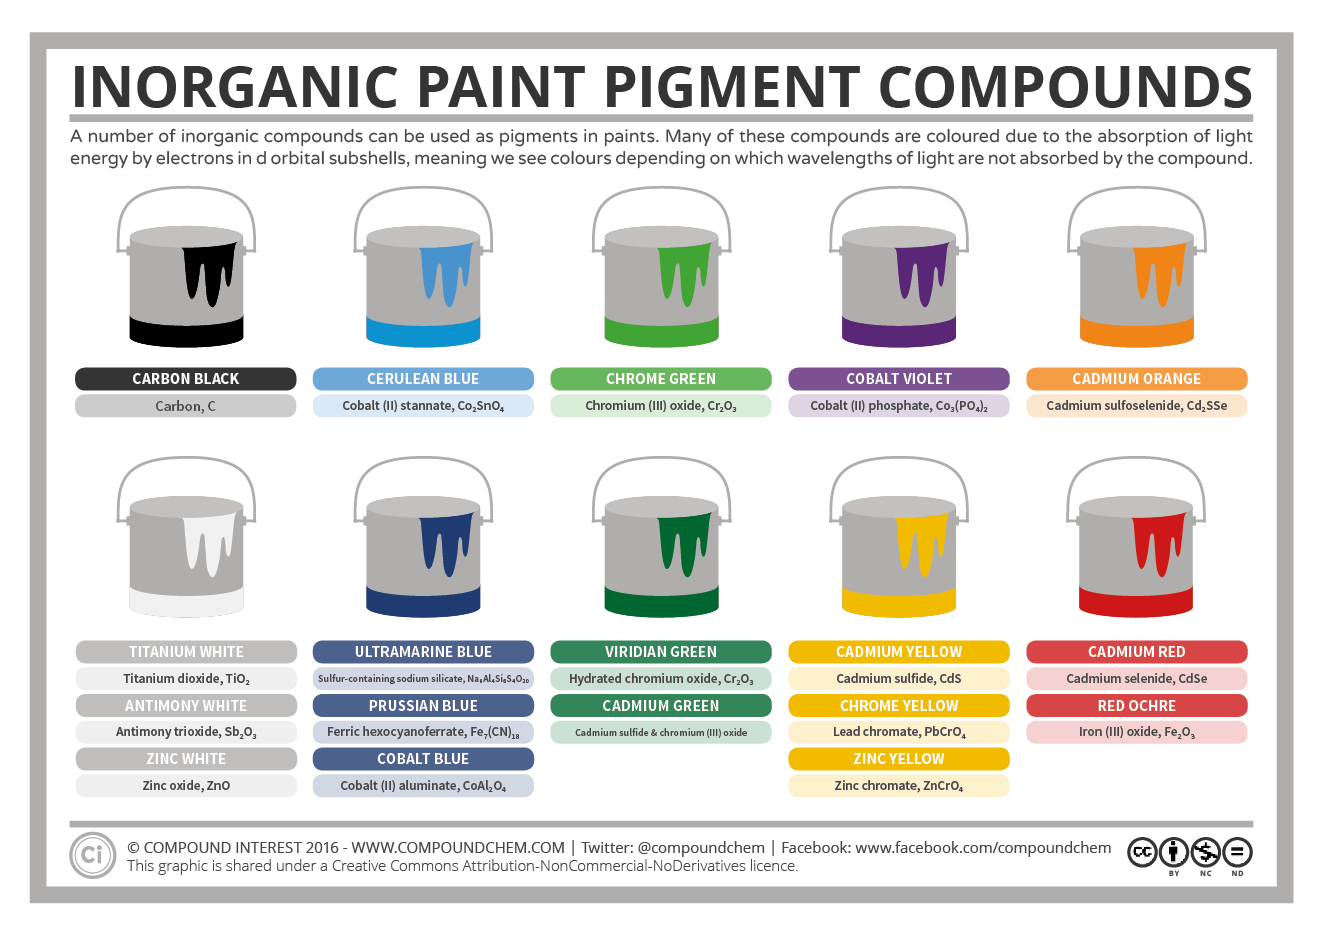 Compound Interest Inorganic Pigment Compounds The